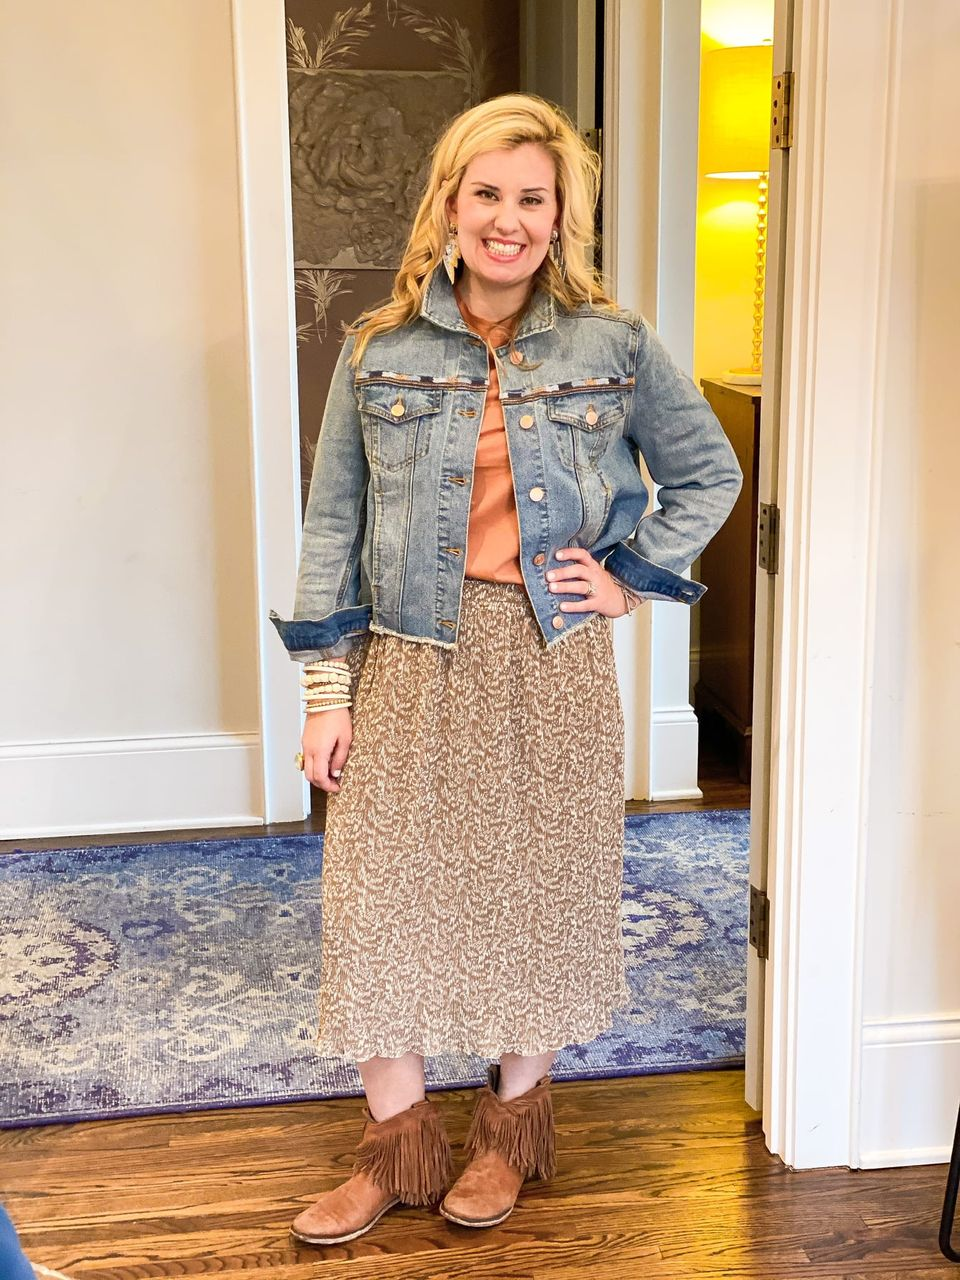 Catherine Martine wearing the Adina Skirt from the Good Hart Spring 2021 Collection